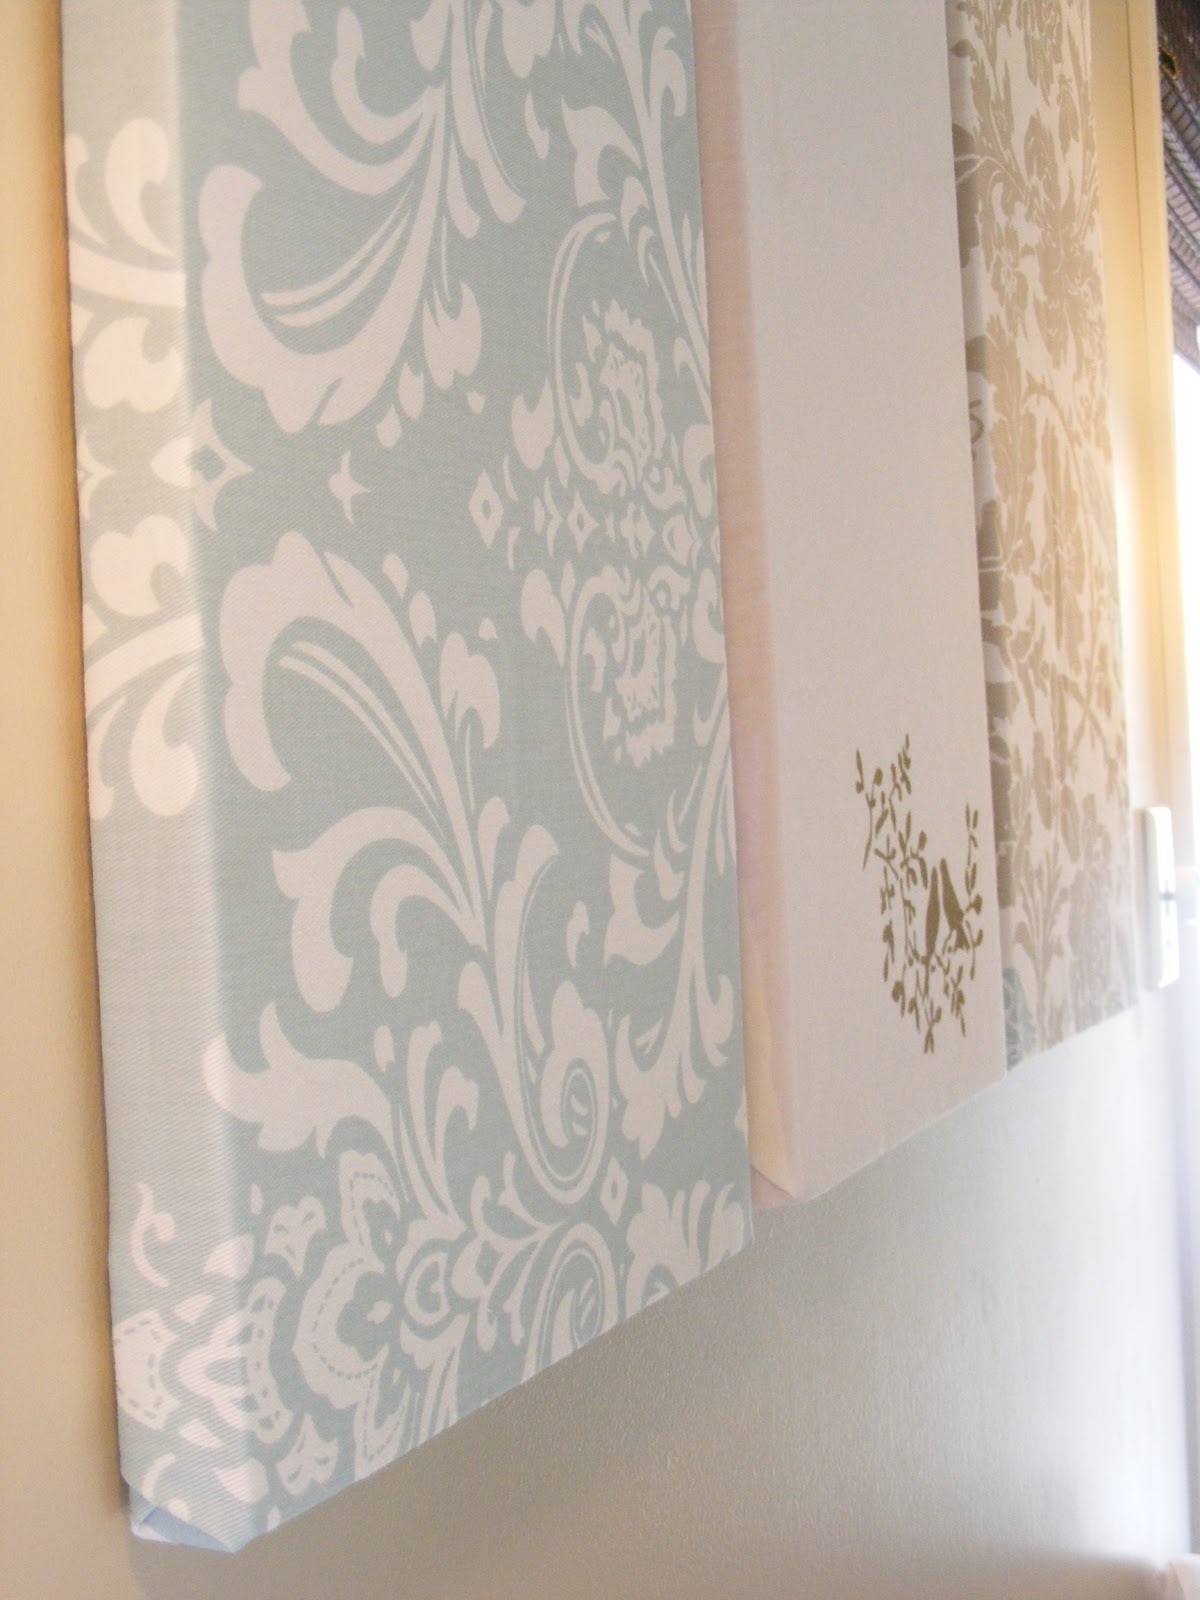 The Complete Guide To Imperfect Homemaking: Simple, Thrifty Diy Art Regarding Recent Padded Fabric Wall Art (View 12 of 15)